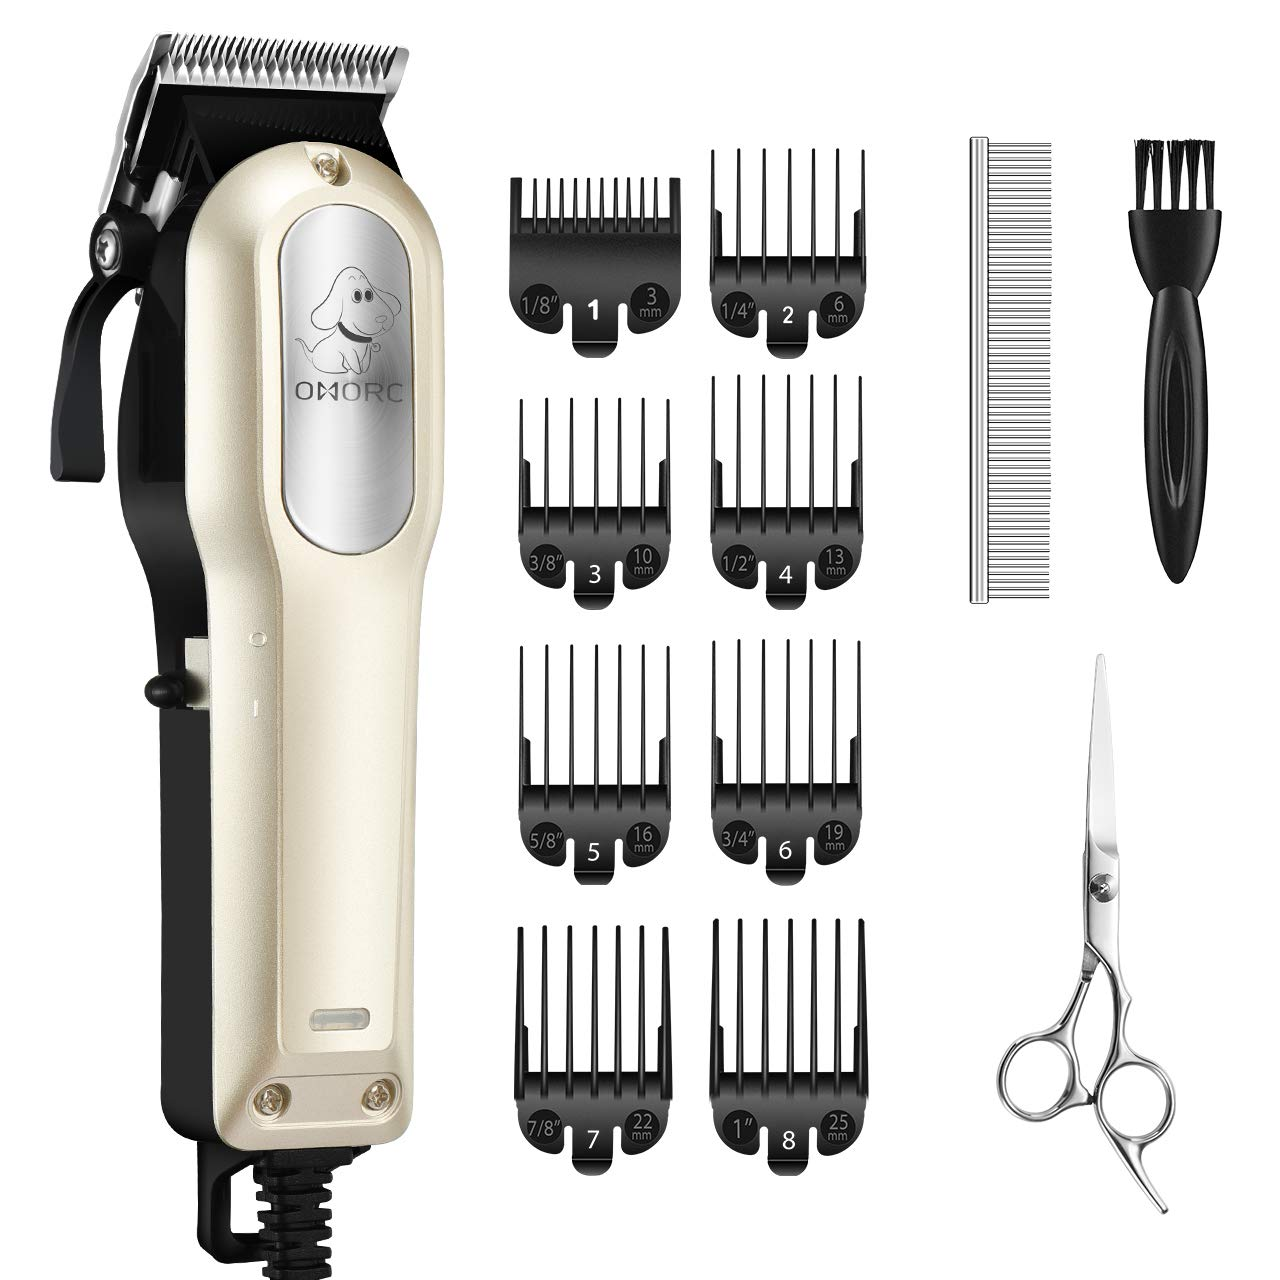 OMORC Dog Grooming Kit, Professional High Power Dog Clippers for Thick Heavy Coats Low Noise Heavy Duty Dog Grooming Clippers Pet Clippers Trimmer with 8 Comb Guides Scissors for Small Large Dogs Cats by OMORC